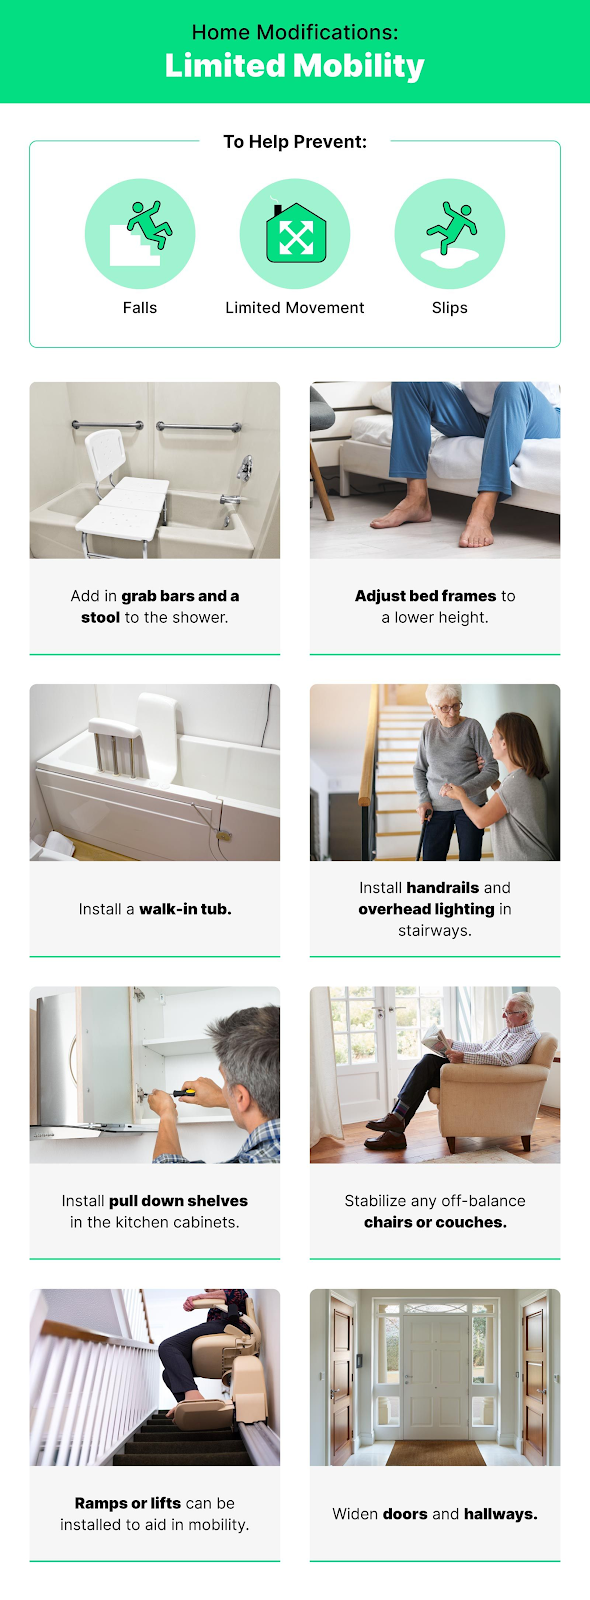 Home Aging in Place Modifications for Senors: Limited Mobility infographic